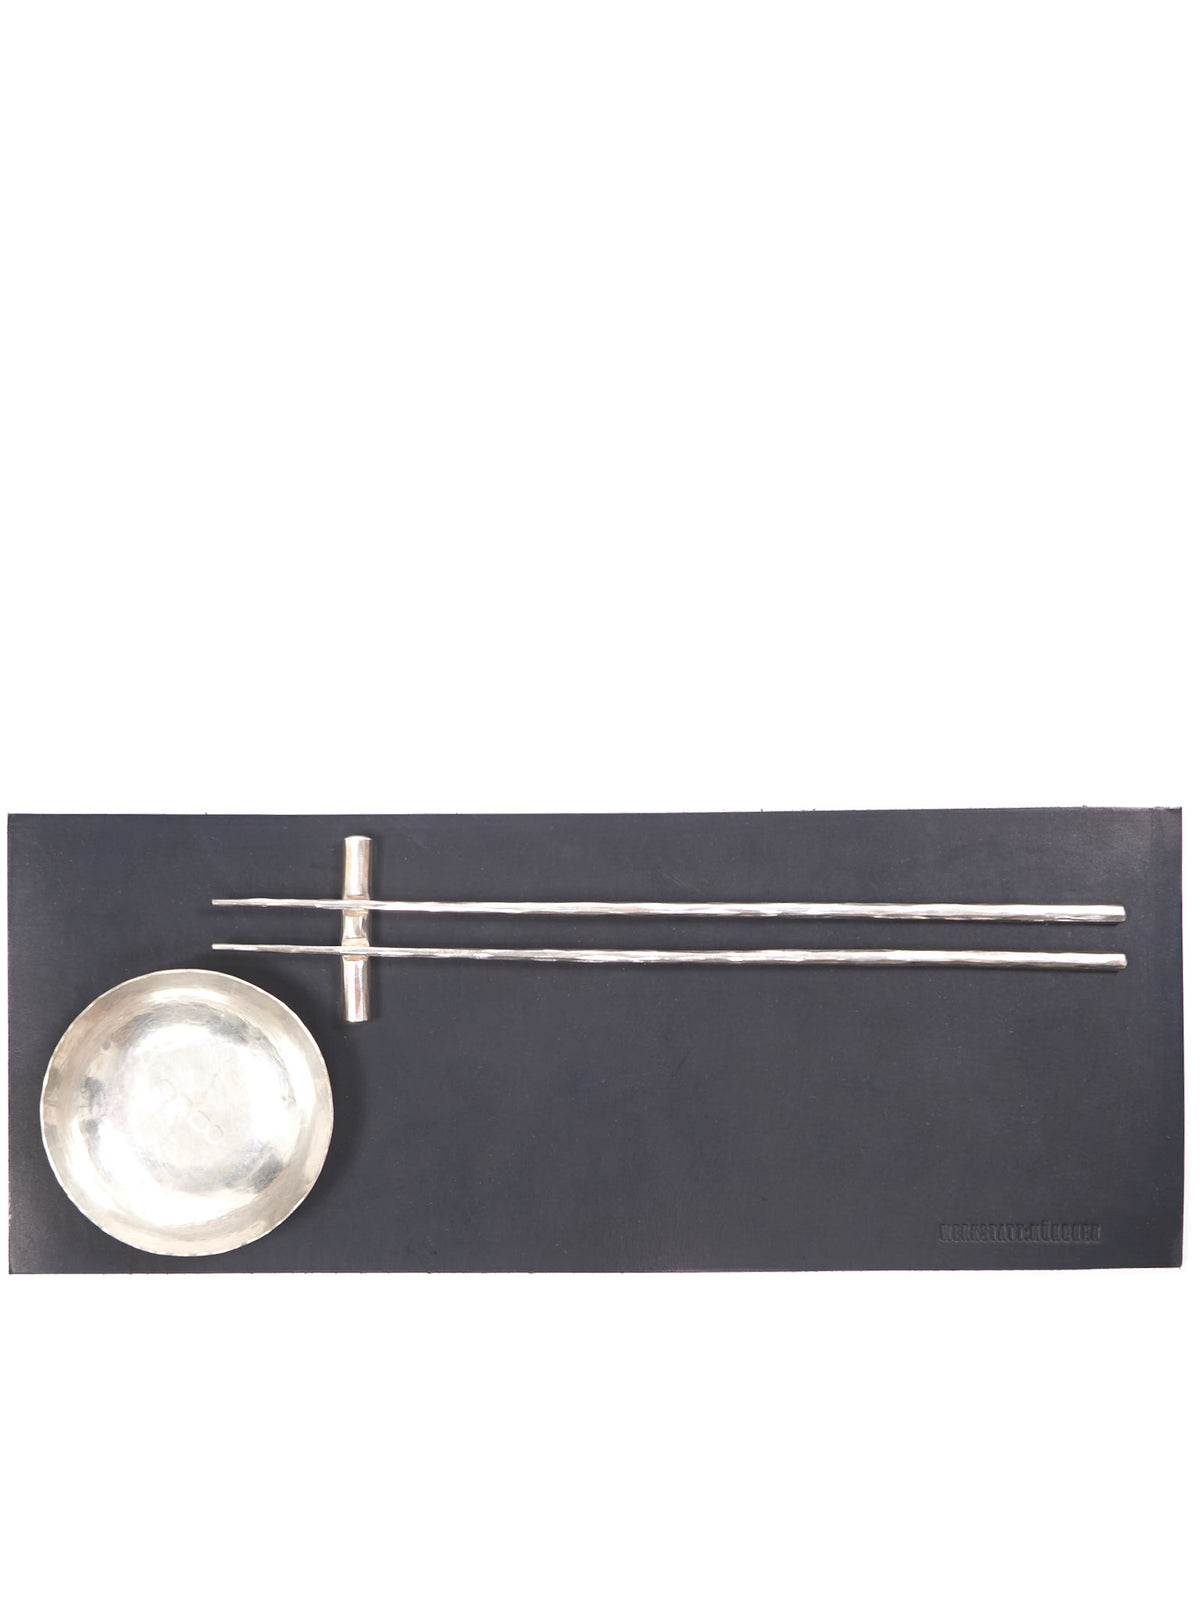 Chopsticks Set (M0131-CSTK-SET-TABLE-MAT-SIL)